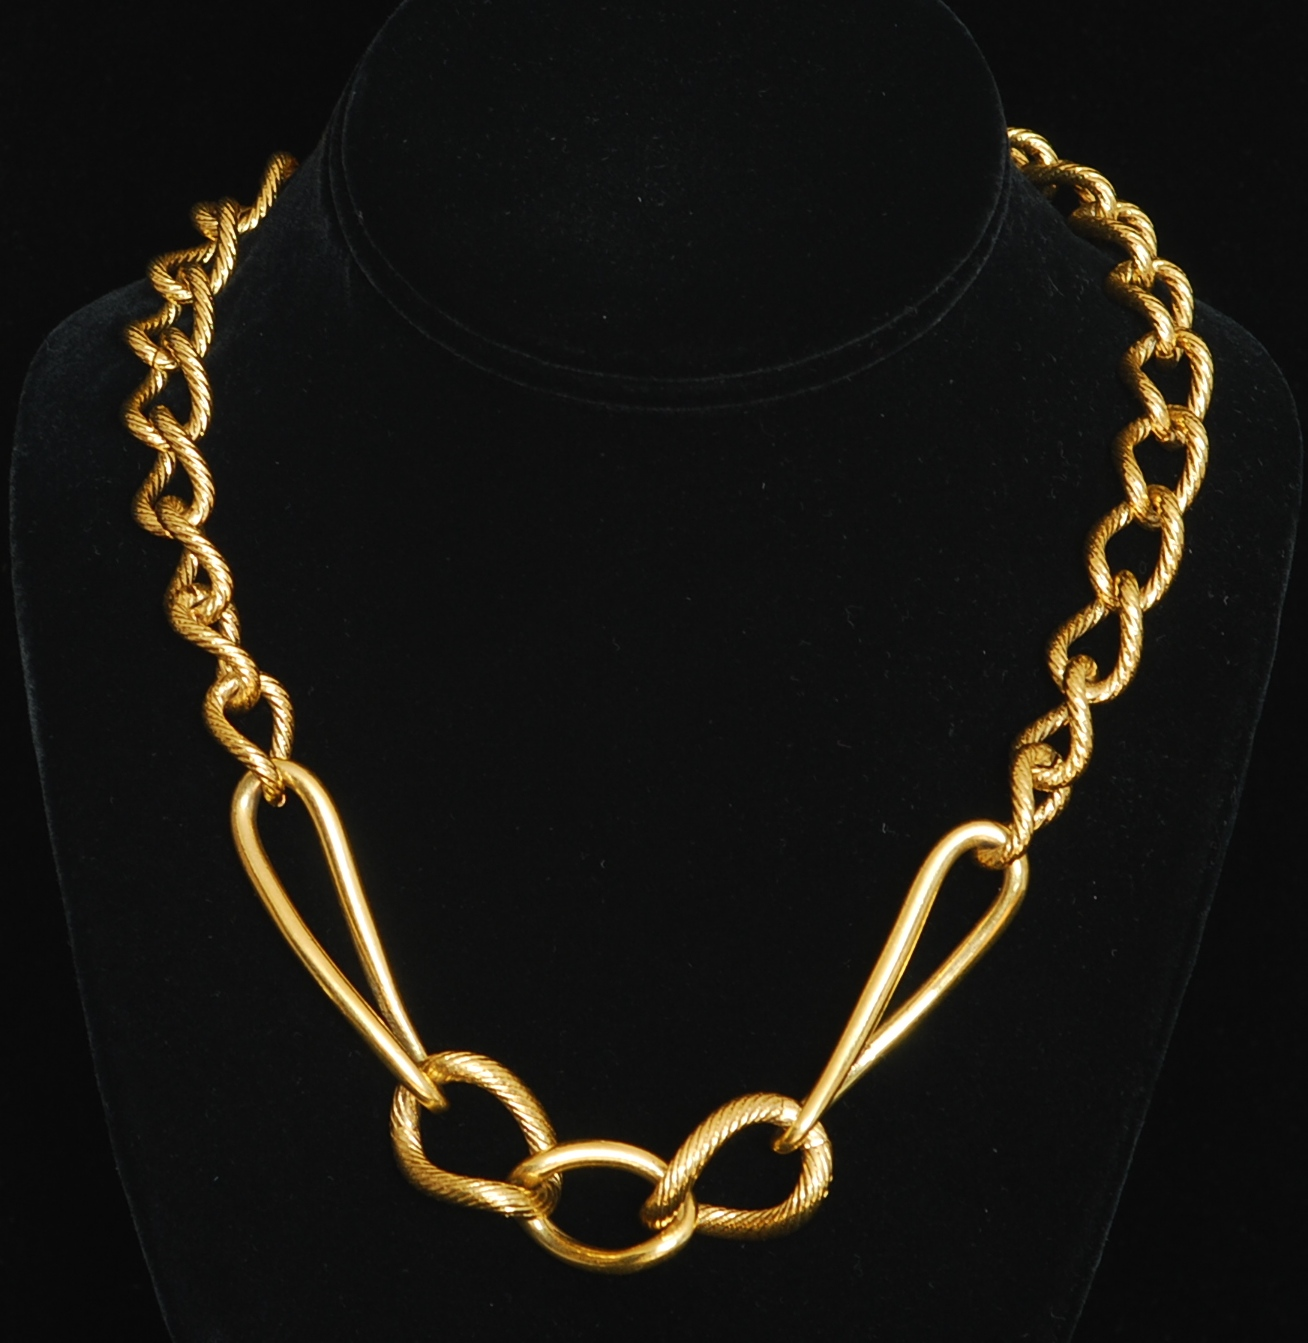 Is Monet Jewelry Real >> Monet Gold Tone Textured Metal Necklace – Signed | QUIET WEST VINTAGE